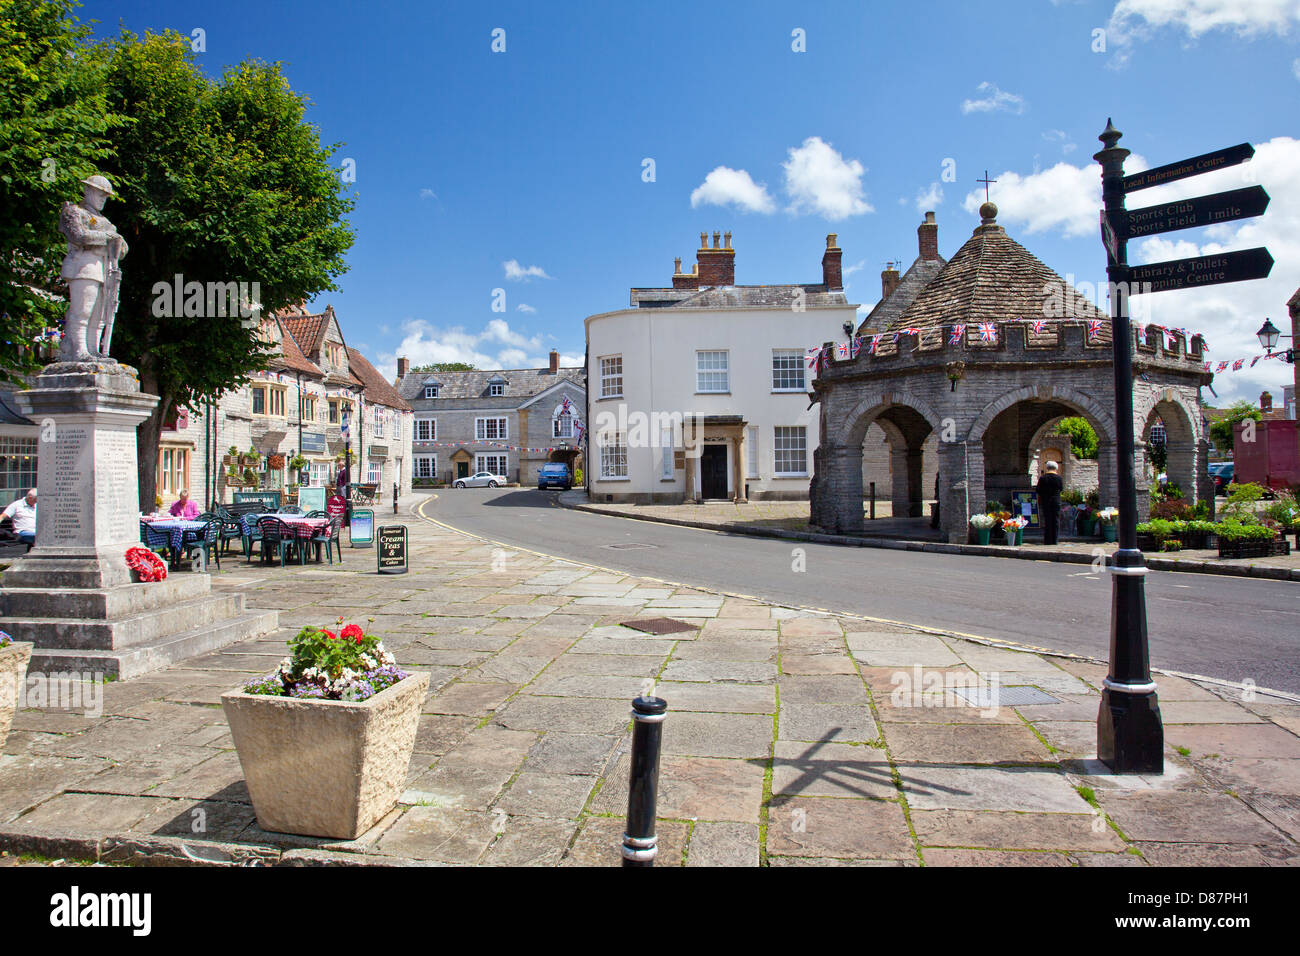 The Market Square and historic Market Cross in Somerton, Somerset, England, UK - Stock Image